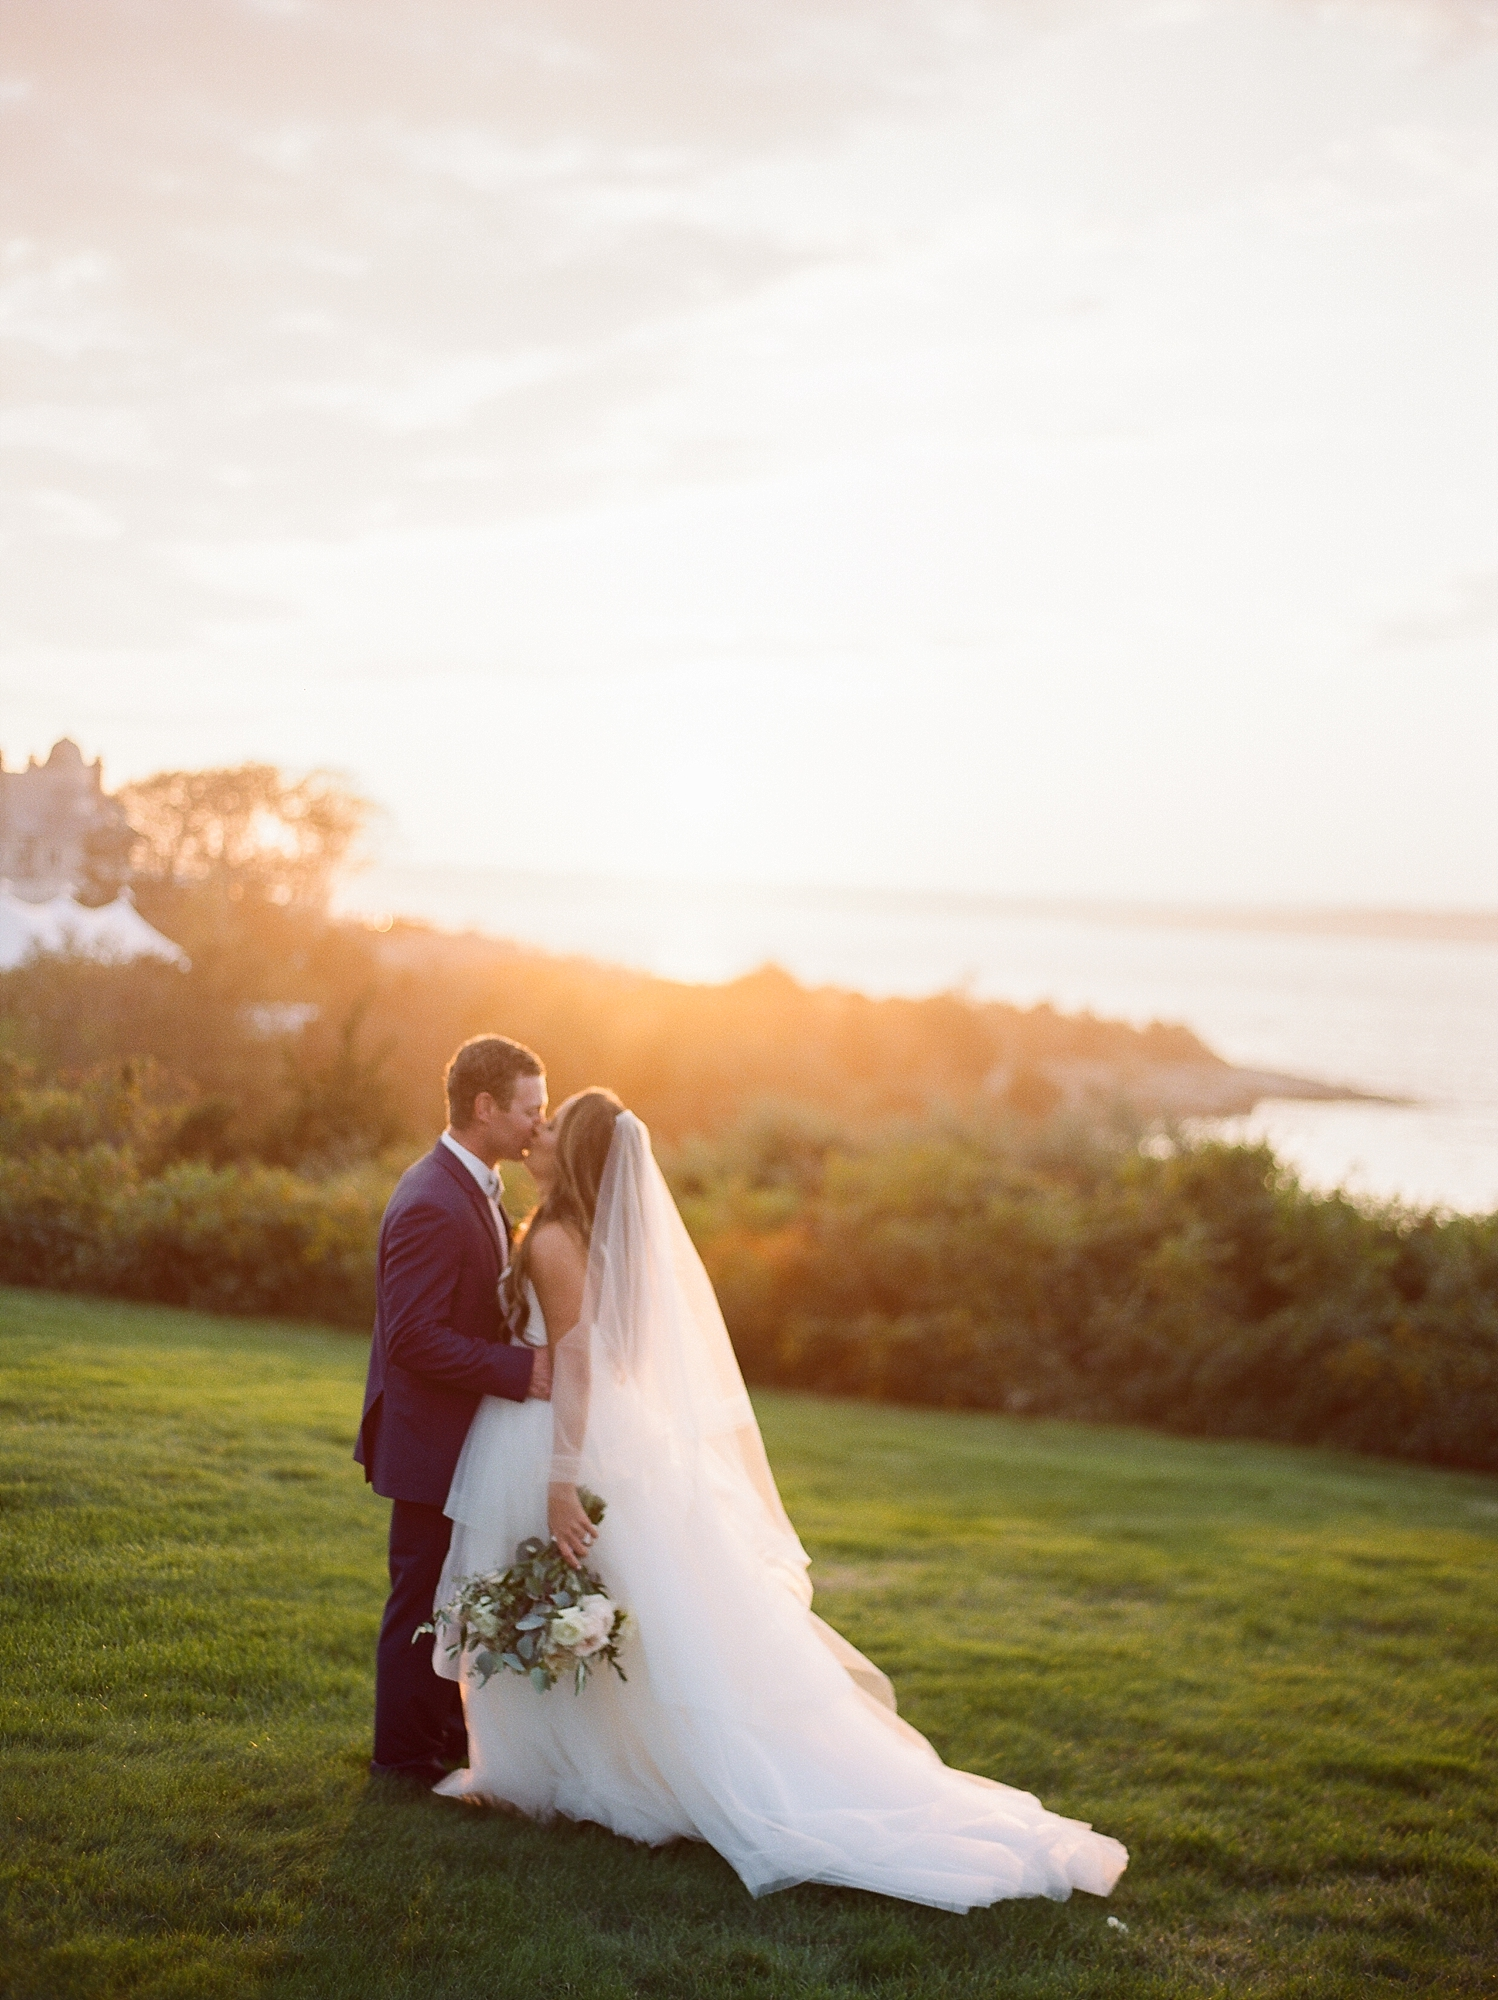 Coastal and Authentic Film Wedding Photography in Newport Rhode Island by Magdalena Studios 0075